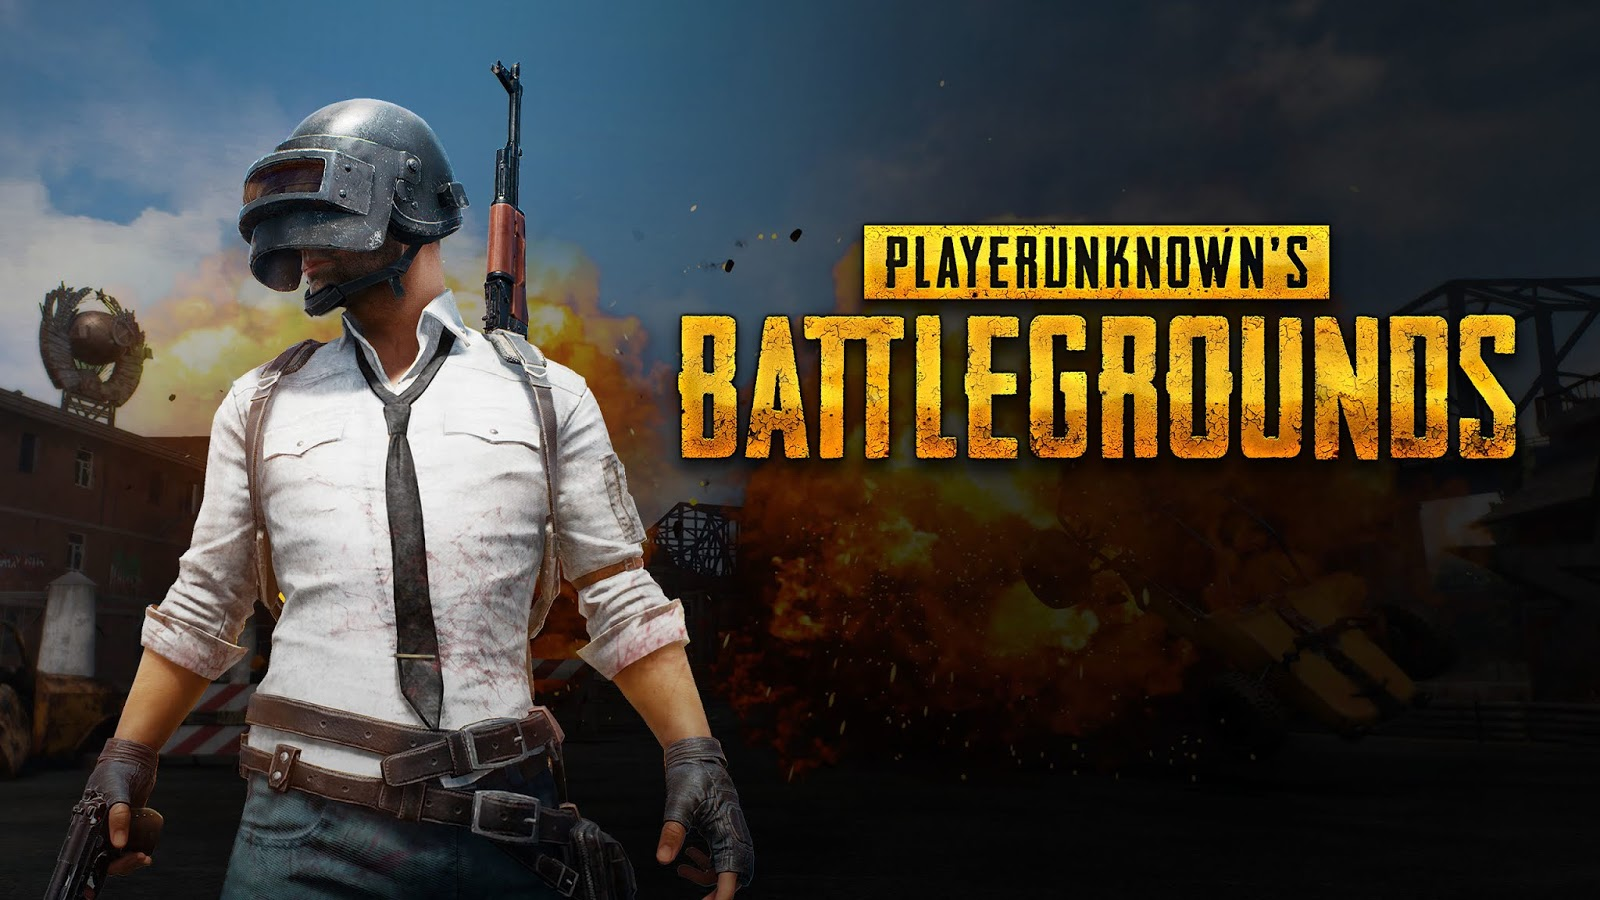 How to play pubg without lag in android - Pubg mobile lag